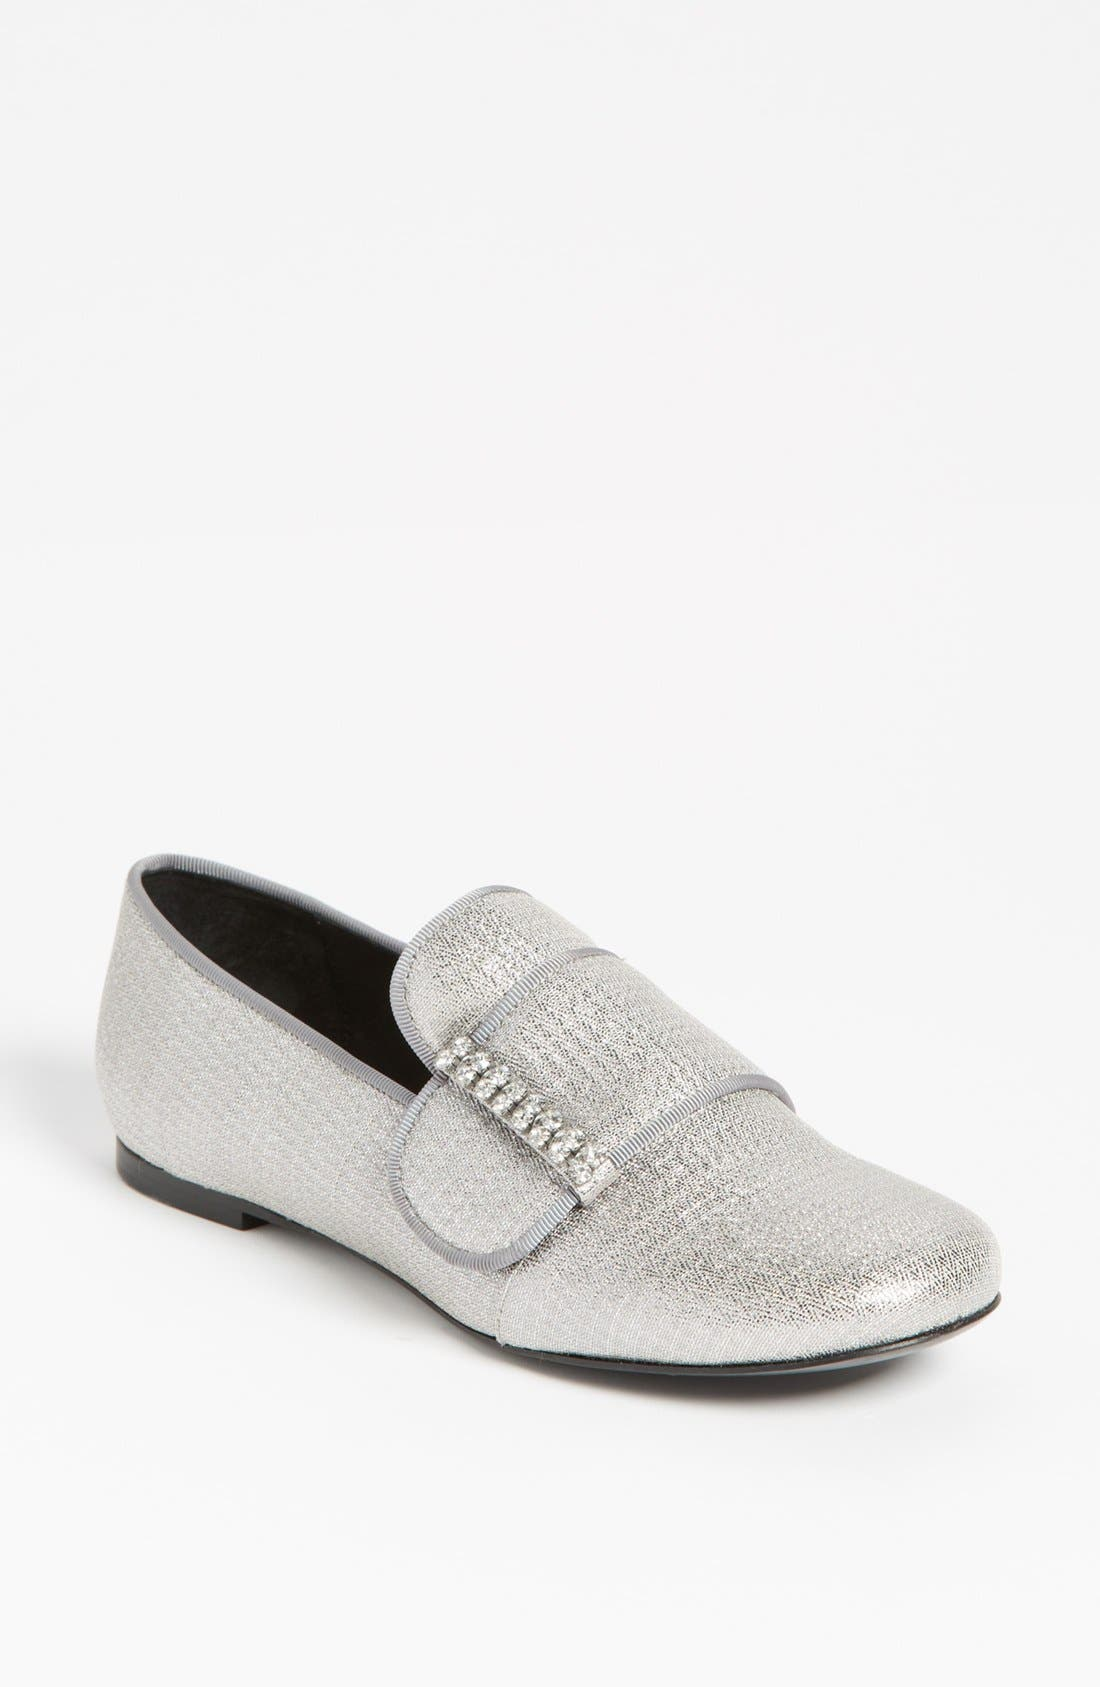 Alternate Image 1 Selected - See by Chloé 'Ziggy' Loafer Flat